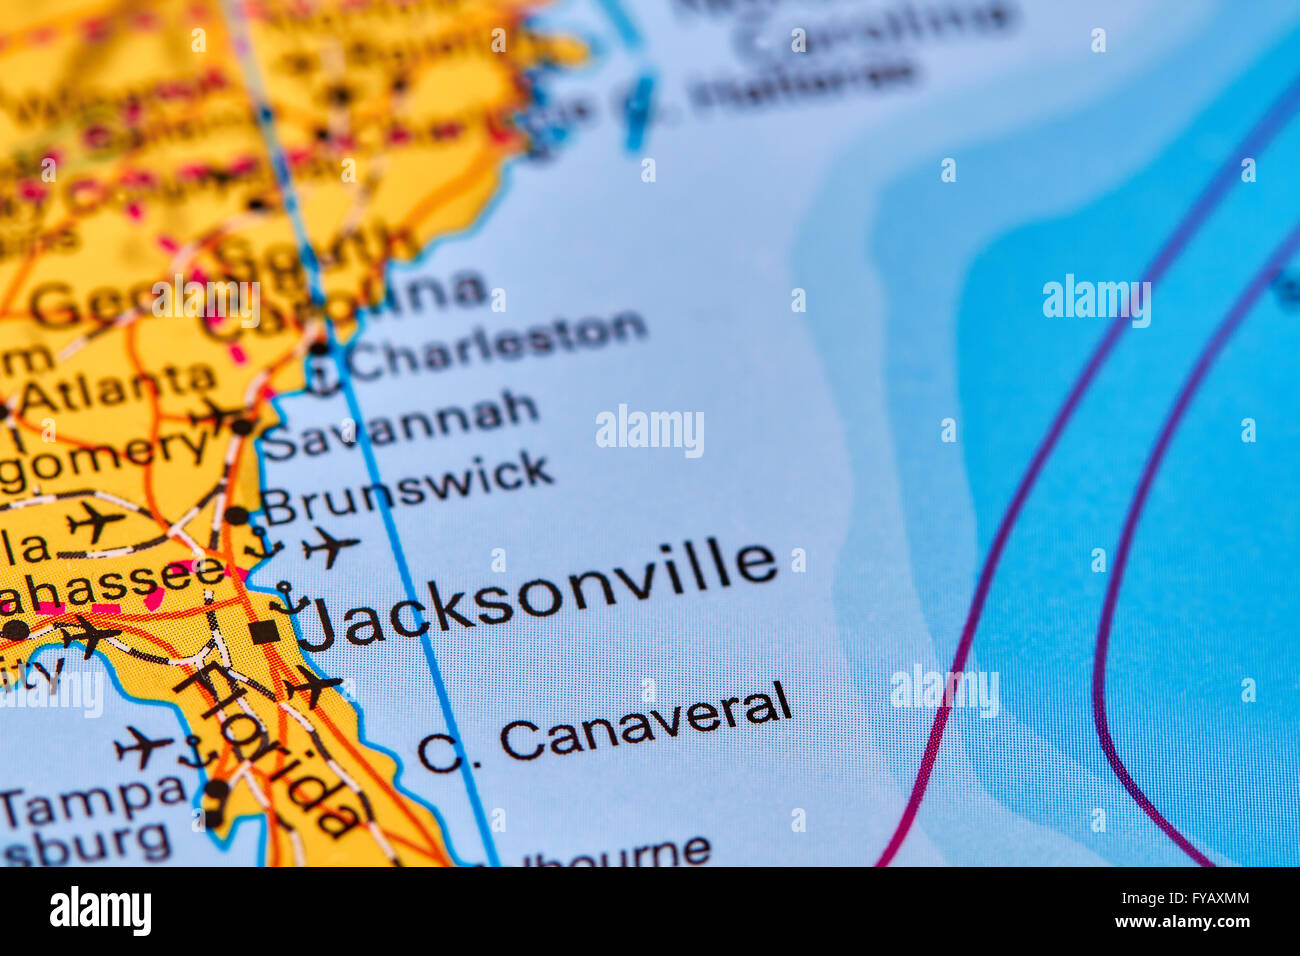 Jacksonville City in USA on the World Map Stock Photo Royalty